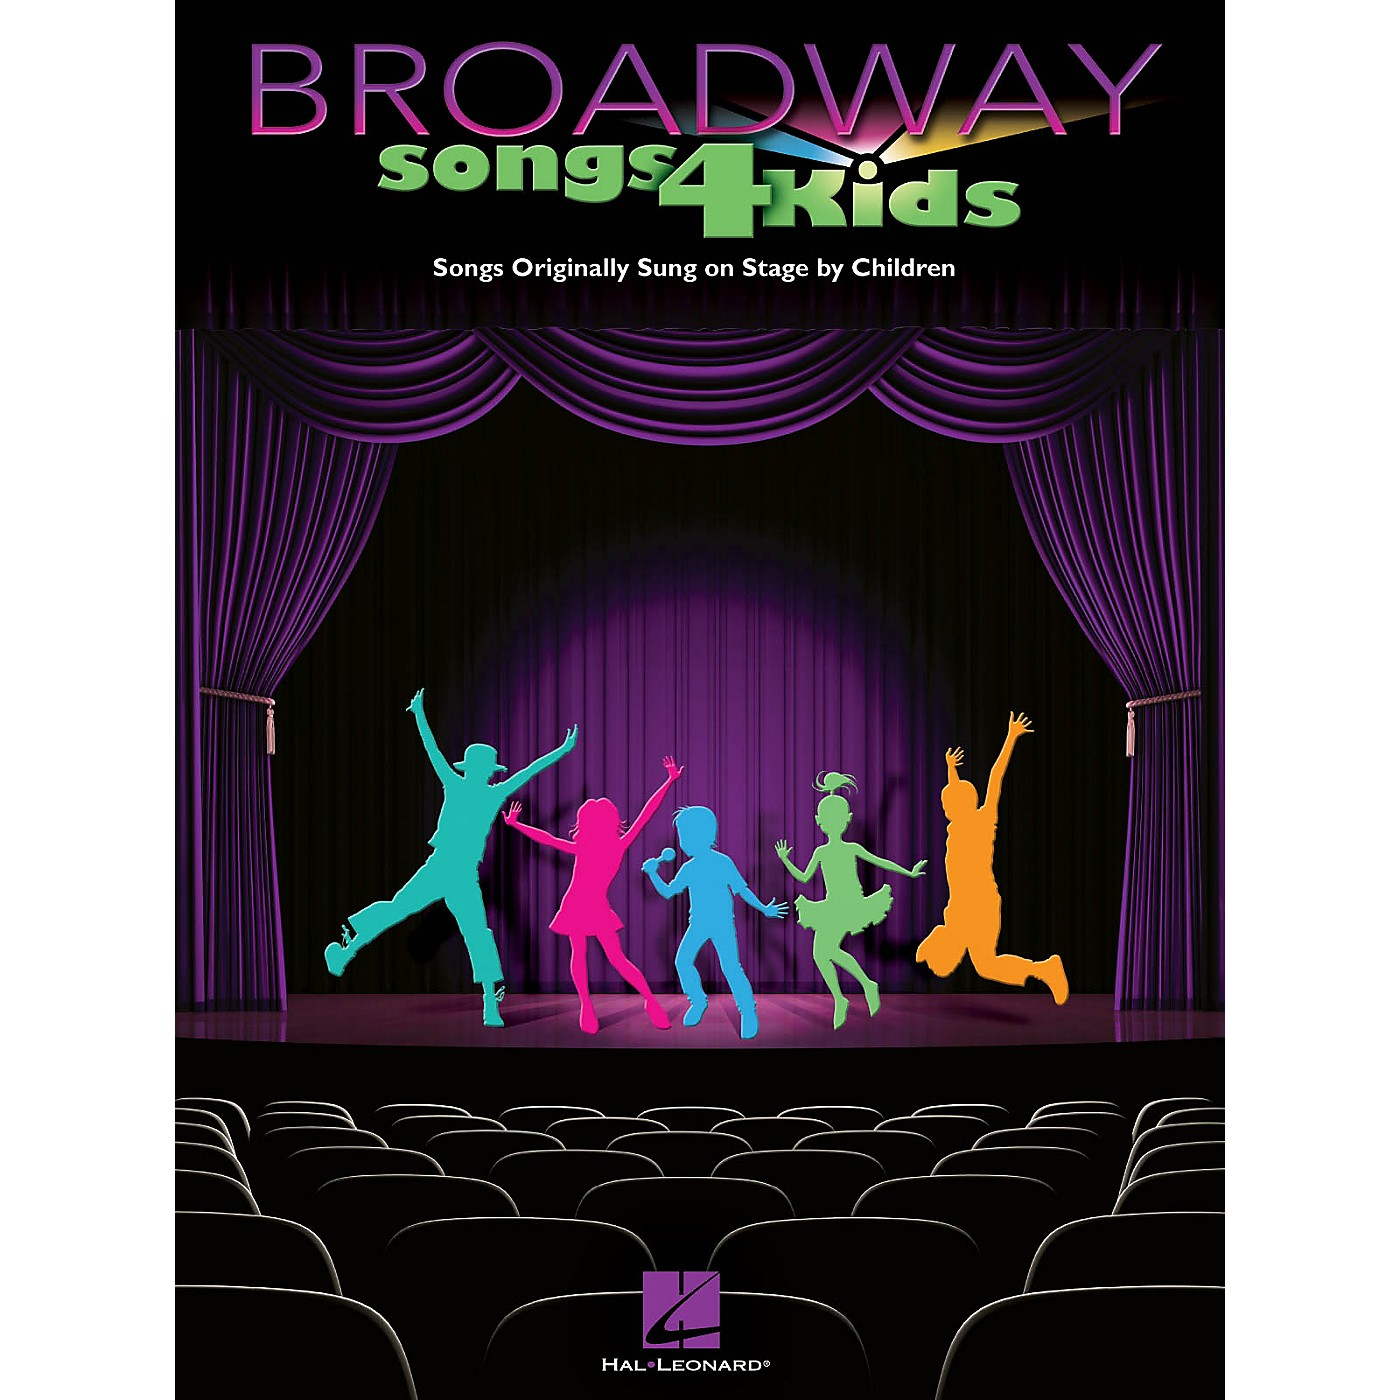 Hal Leonard Broadway Songs for Kids Piano/Vocal/Guitar Songbook Series Softcover thumbnail